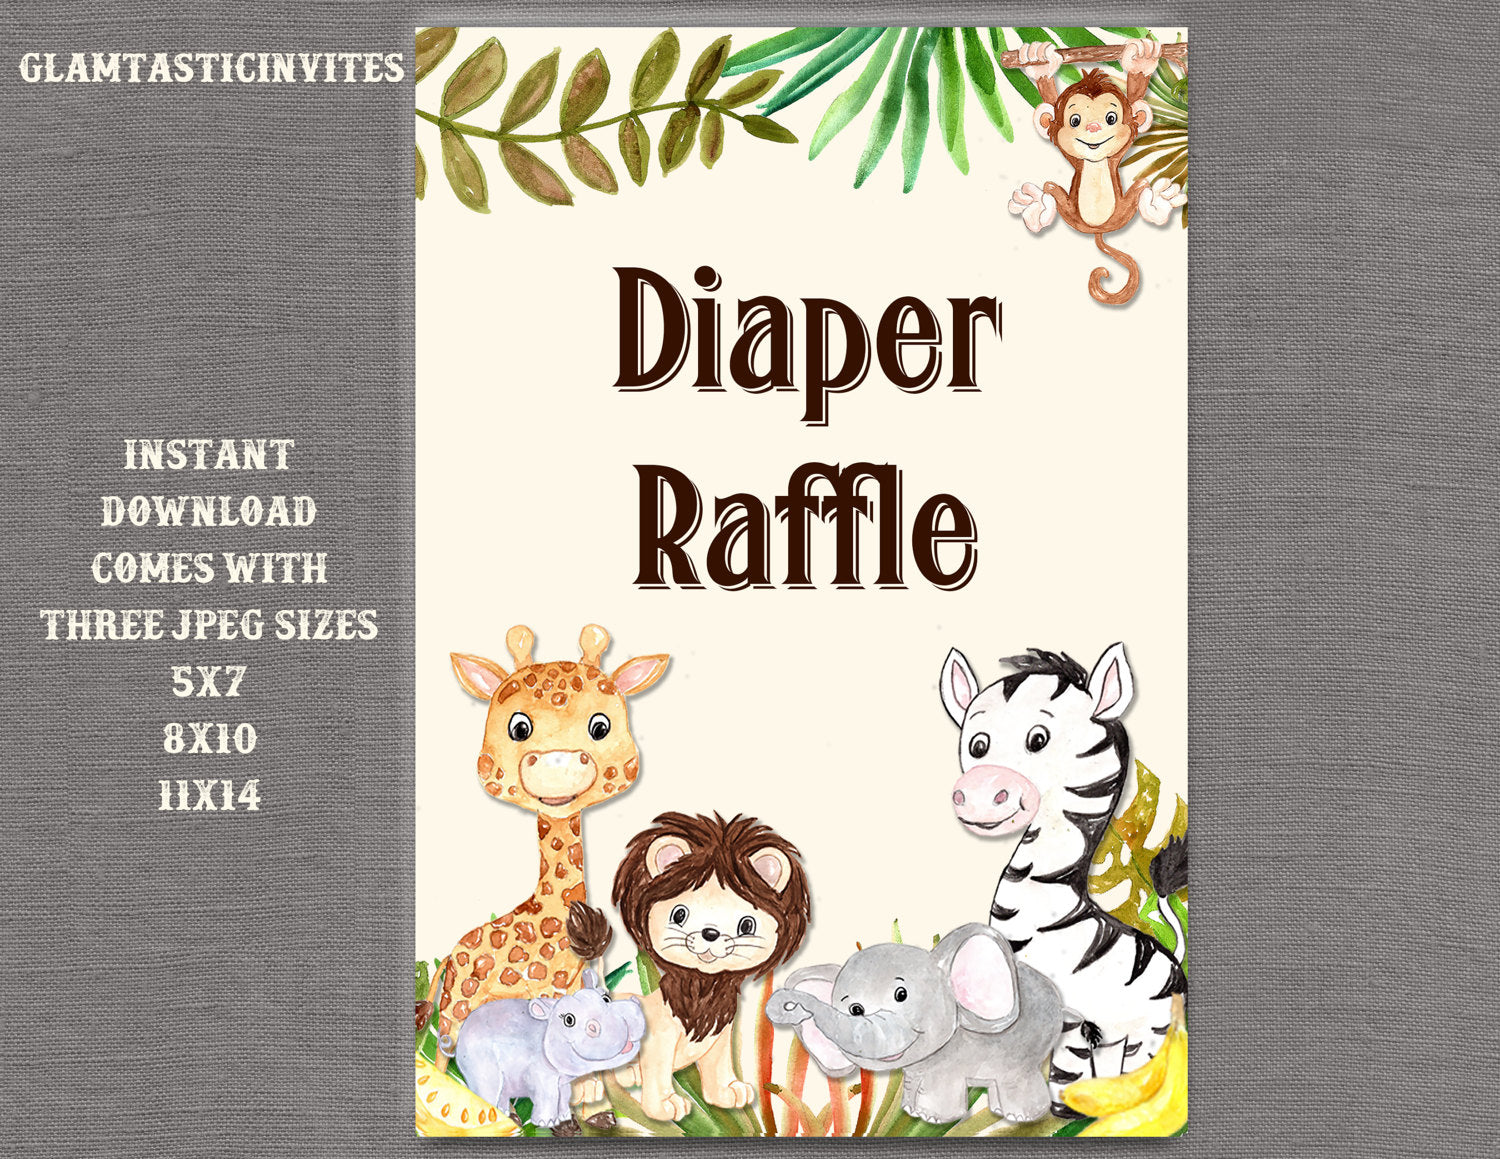 Jungle Diaper Raffle Sign, Jungle Baby Shower Sign, Safari Baby Shower Sign, Shower Decor, Diaper Raffle Sign, Digital Sign, Jungle, Safari